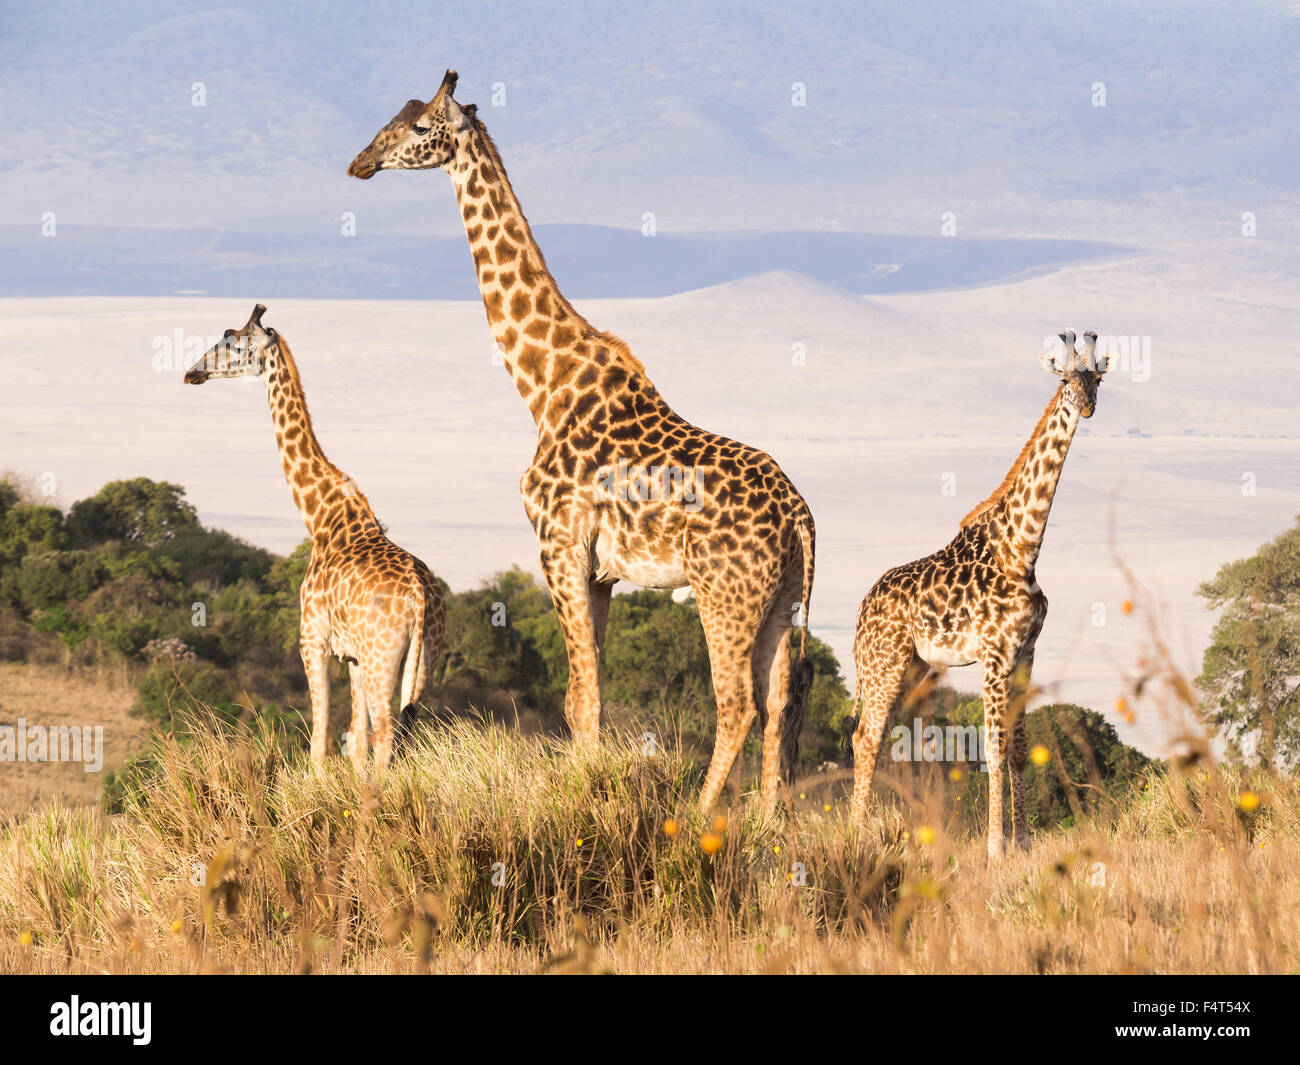 Herd of giraffes on the rim of the Ngorongoro Crater in Tanzania, Africa, at sunset. - Stock Image